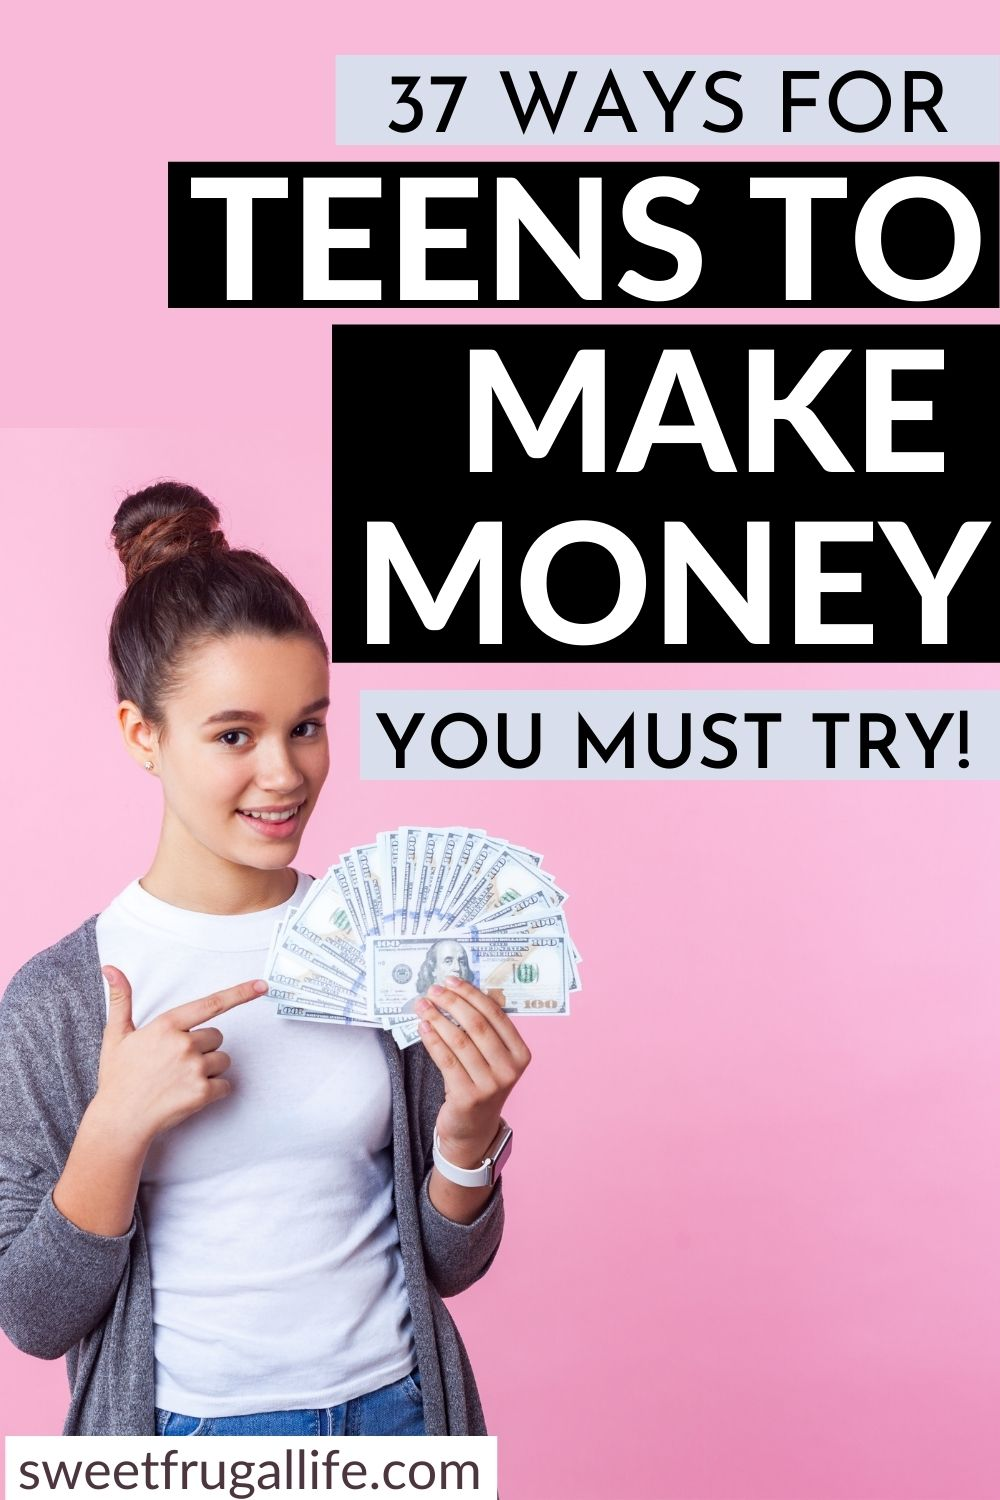 how teens can make money - ways for teenagers to earn money